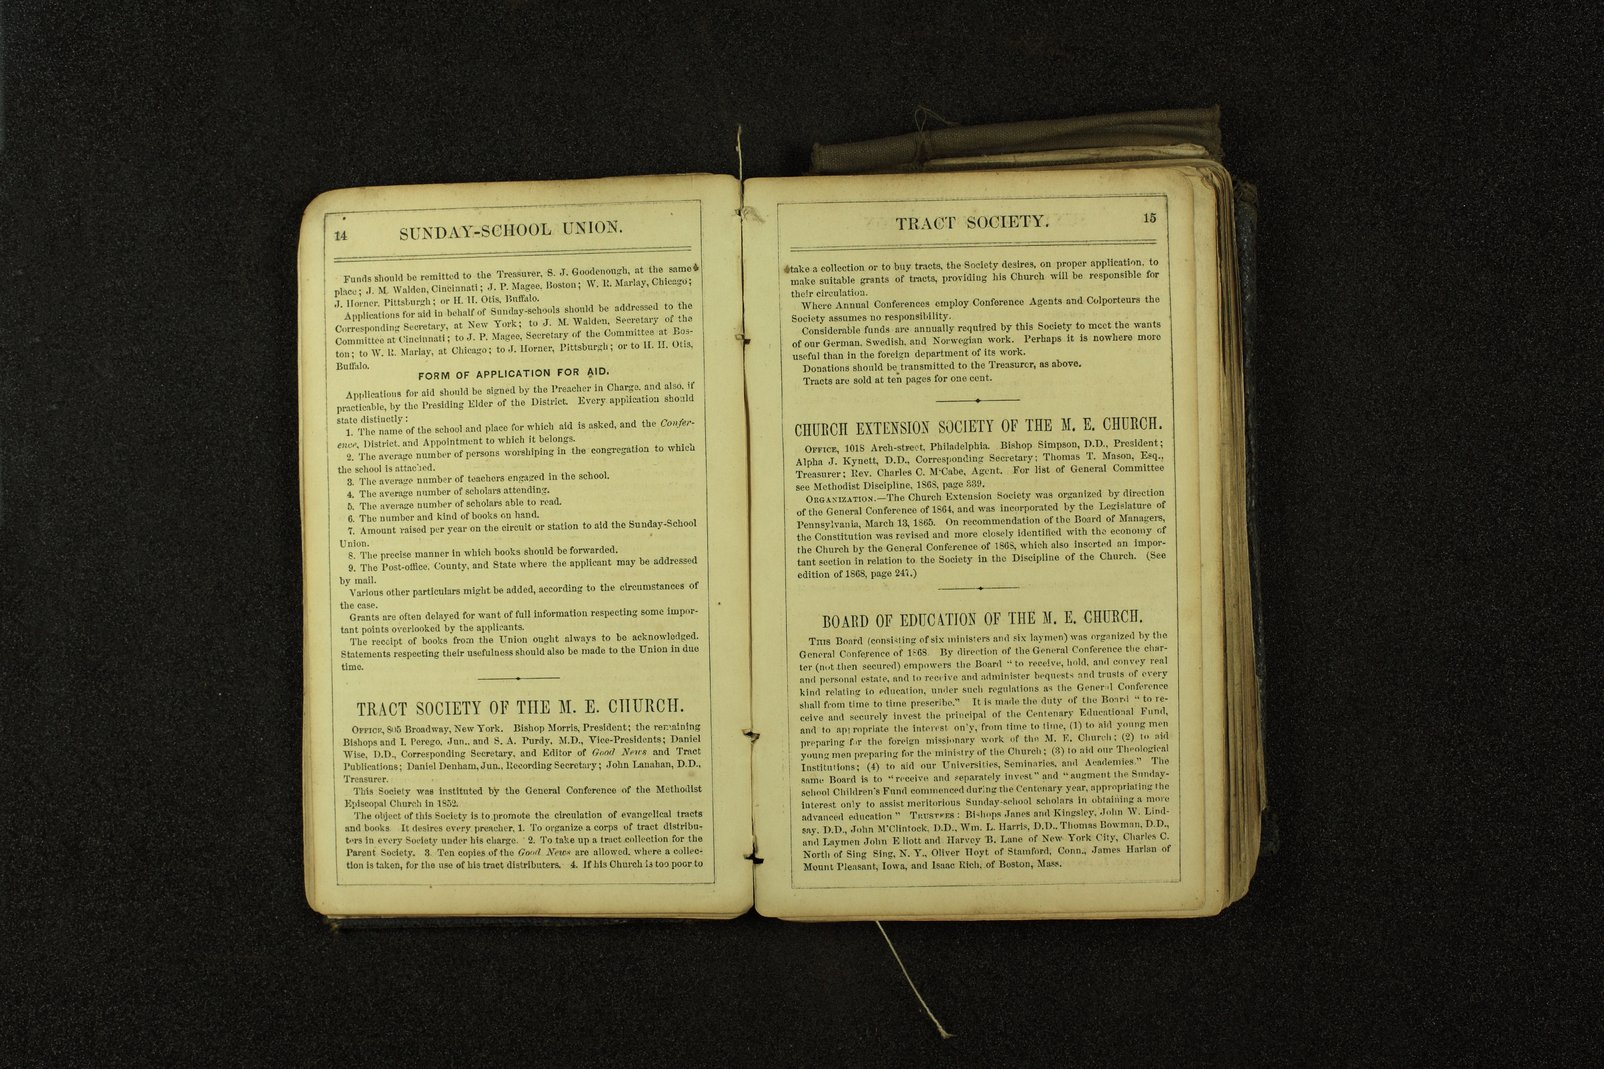 Clergyman's pocket diary and visiting book belonging to Boston Corbett - 14 & 15